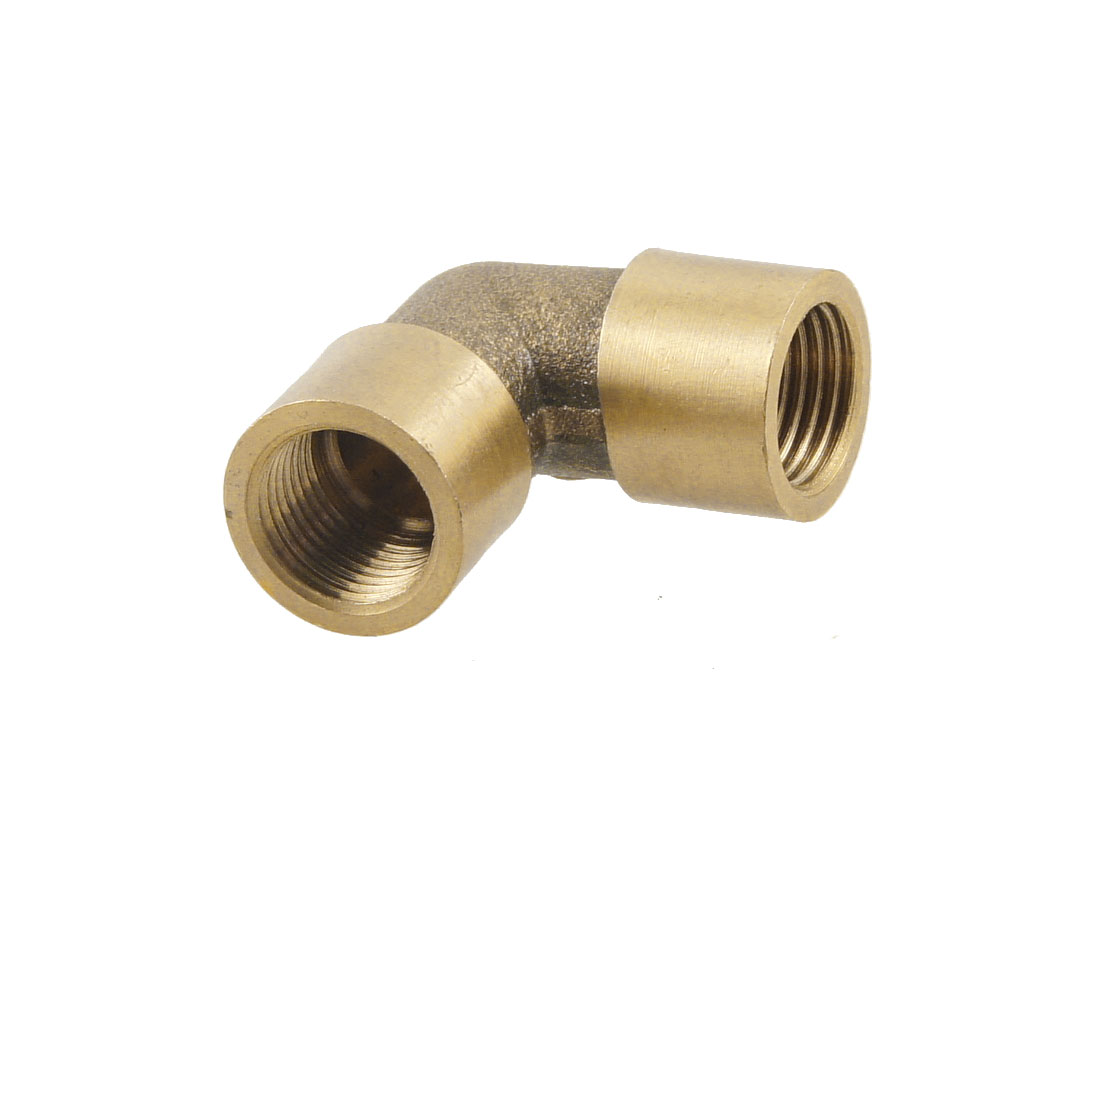 "1/8"" PT Female Threaded 90 Degree Elbow Fitting Union Adapter Bronze Tone"